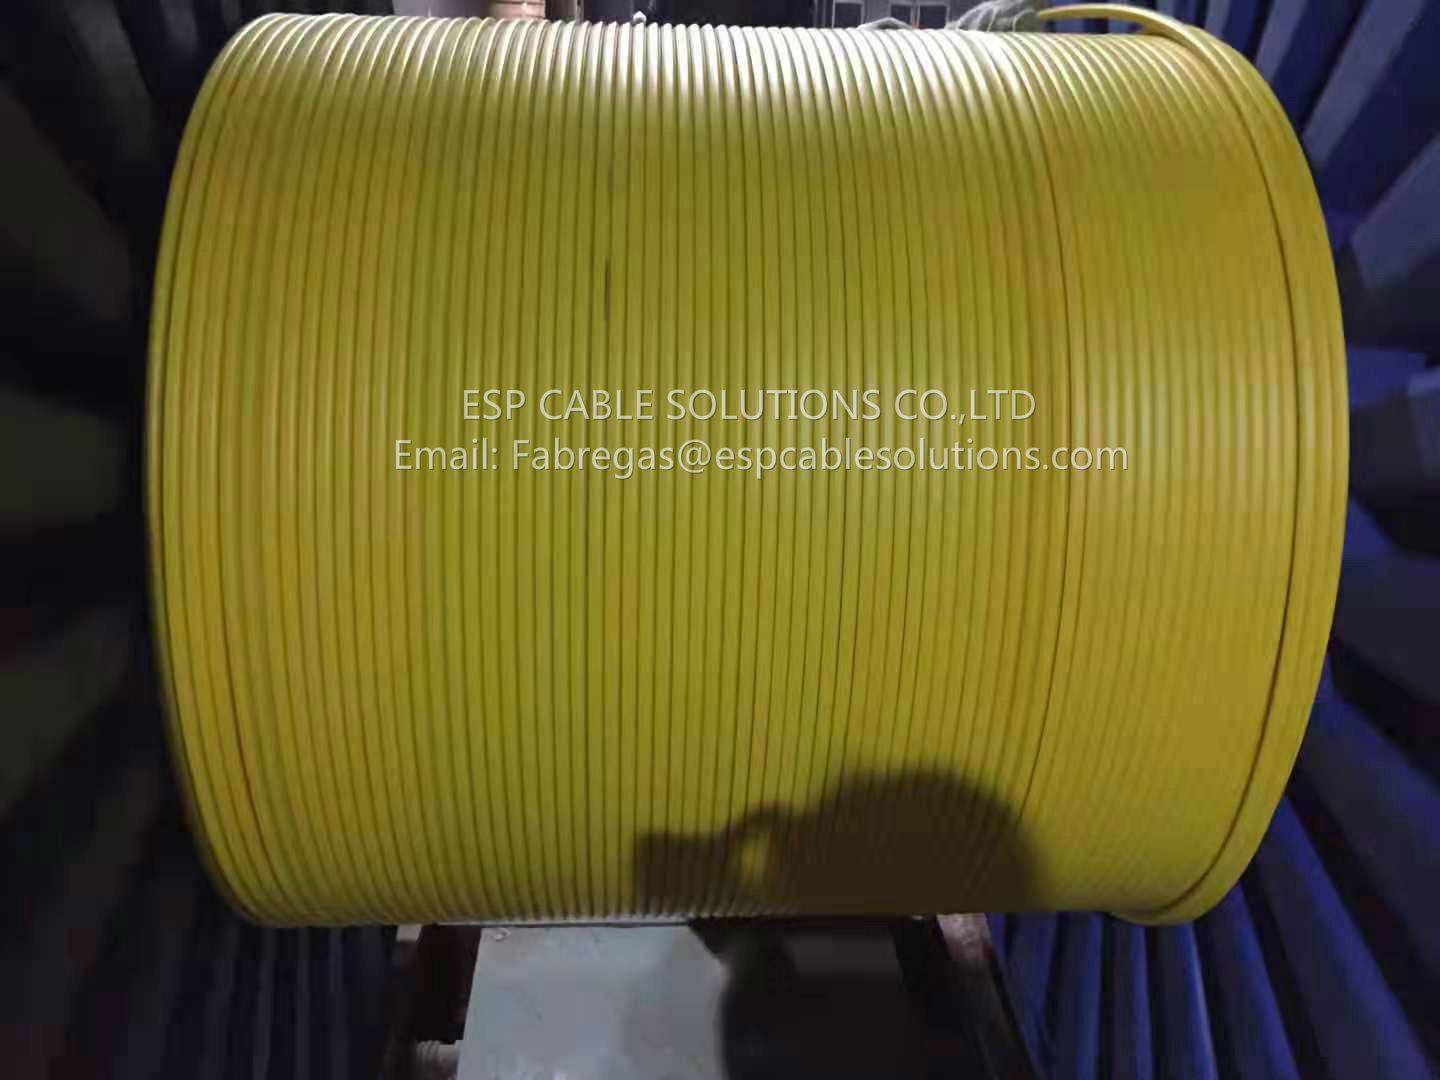 TEC Cable (Tubing Encapsulated Cable)